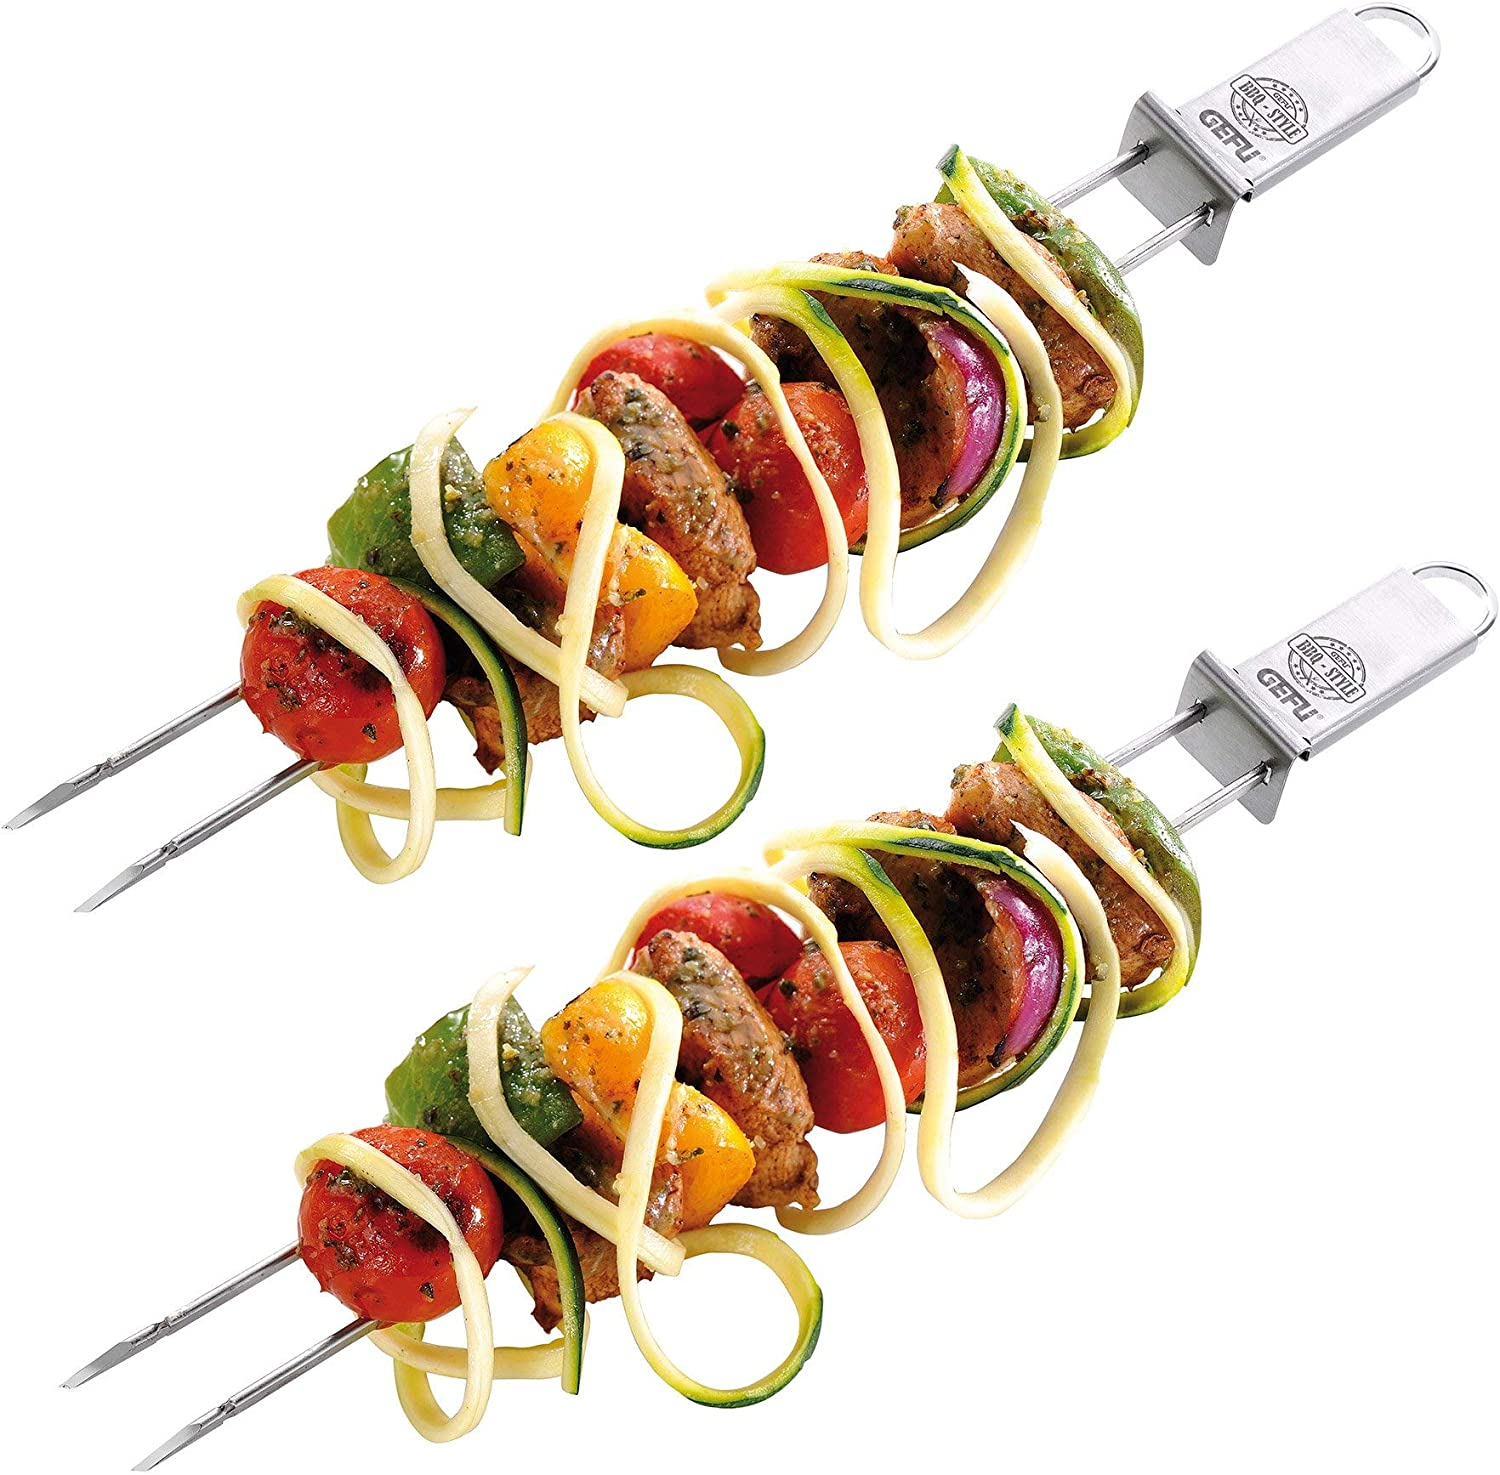 GEFU 15420 Stainless Steel Barbecue skewers Twinco, 2-piece set